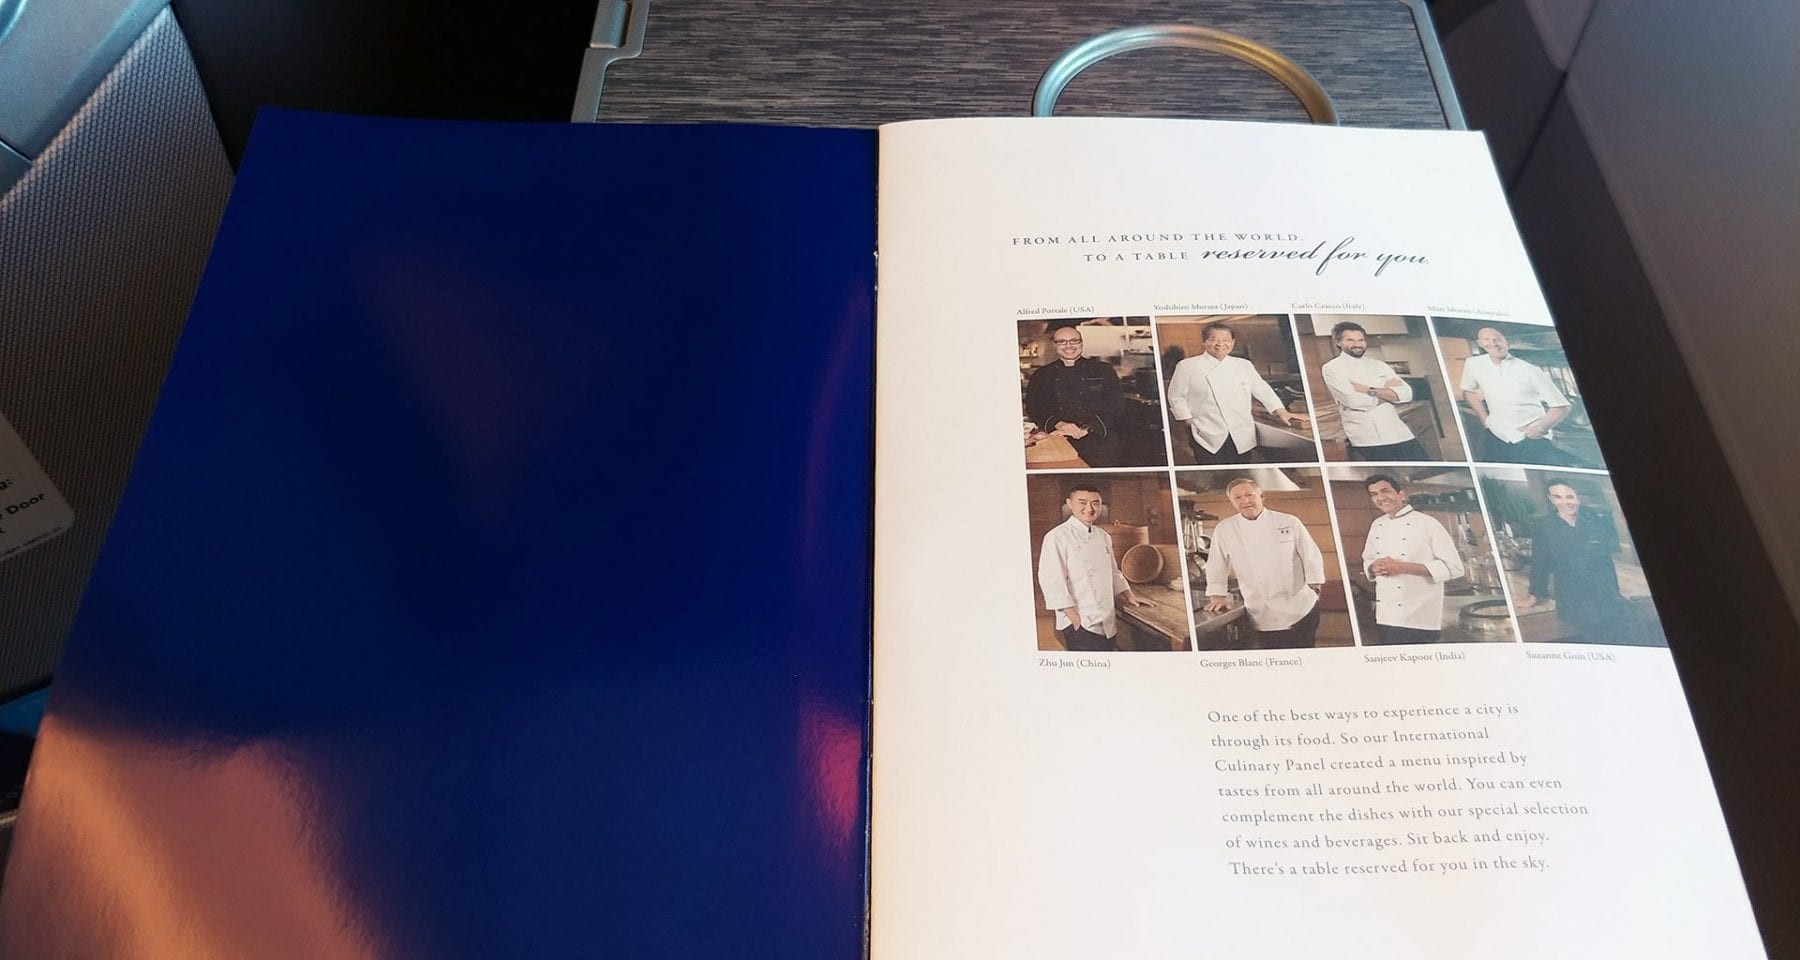 Singapore Airlines Inflight Chefs